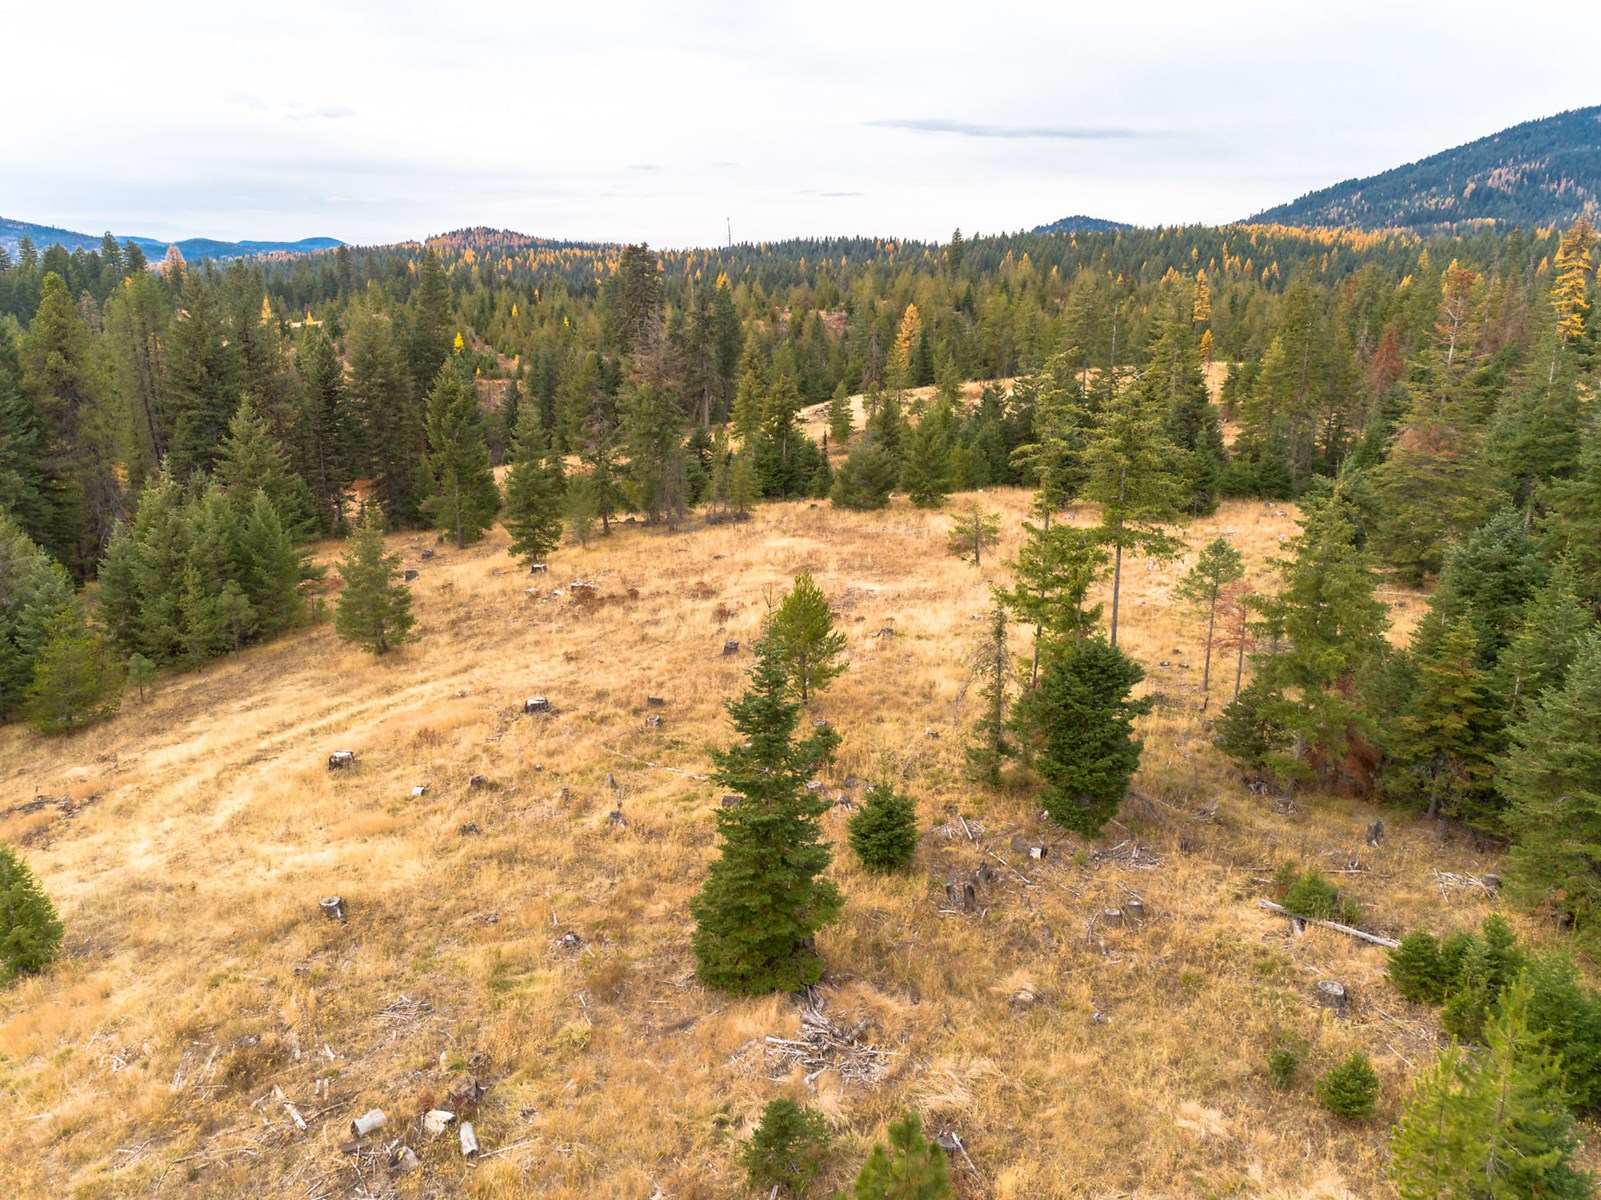 Idaho Rural Residential Acreage For Sale